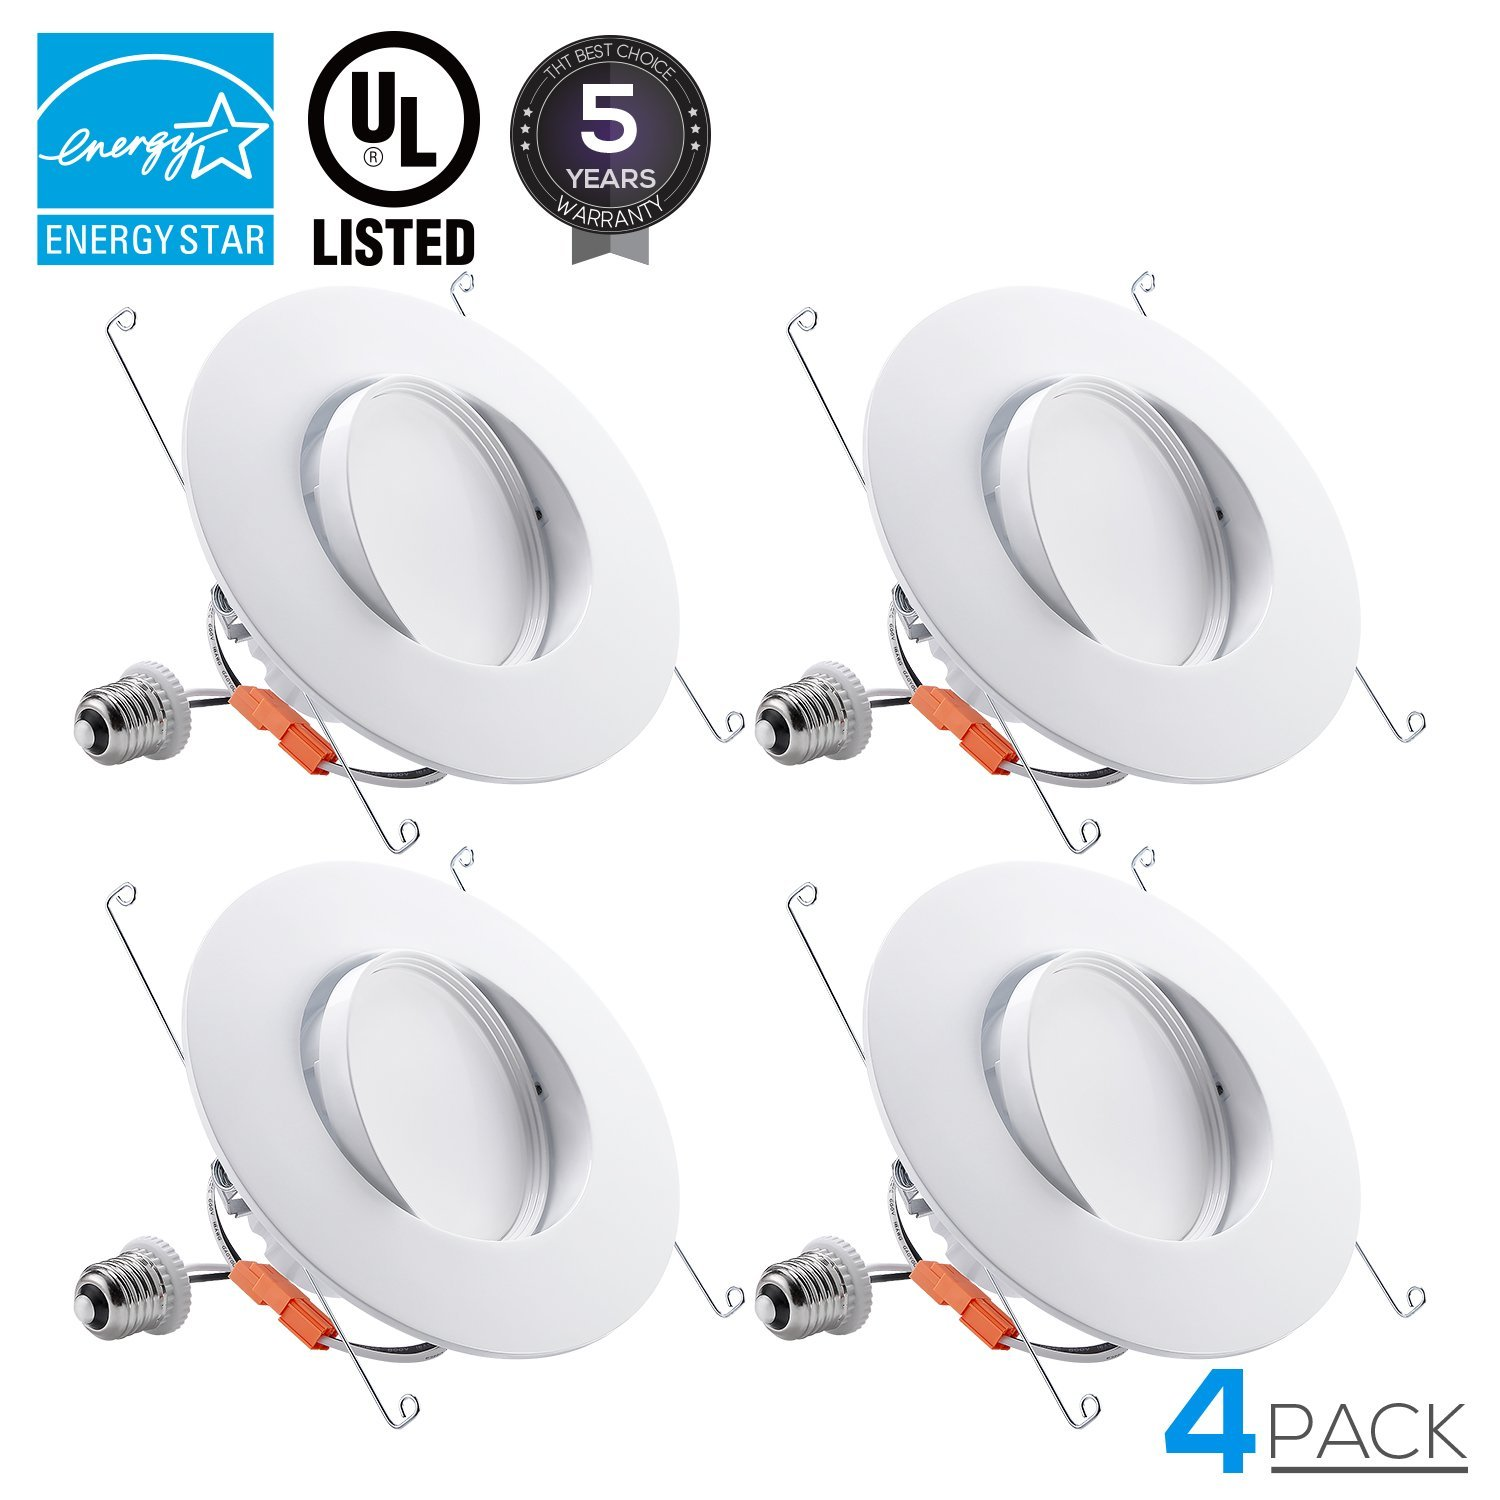 TORCHSTAR 5/6-Inch Retrofit LED Gimbal Downlight, 900lm, 13W (100W Equiv.), UL & ENERGY STAR Certified Dimmable Recessed Light, CRI90+, 5000K Daylight, 5 YEARS WARRANTY, Pack of 4